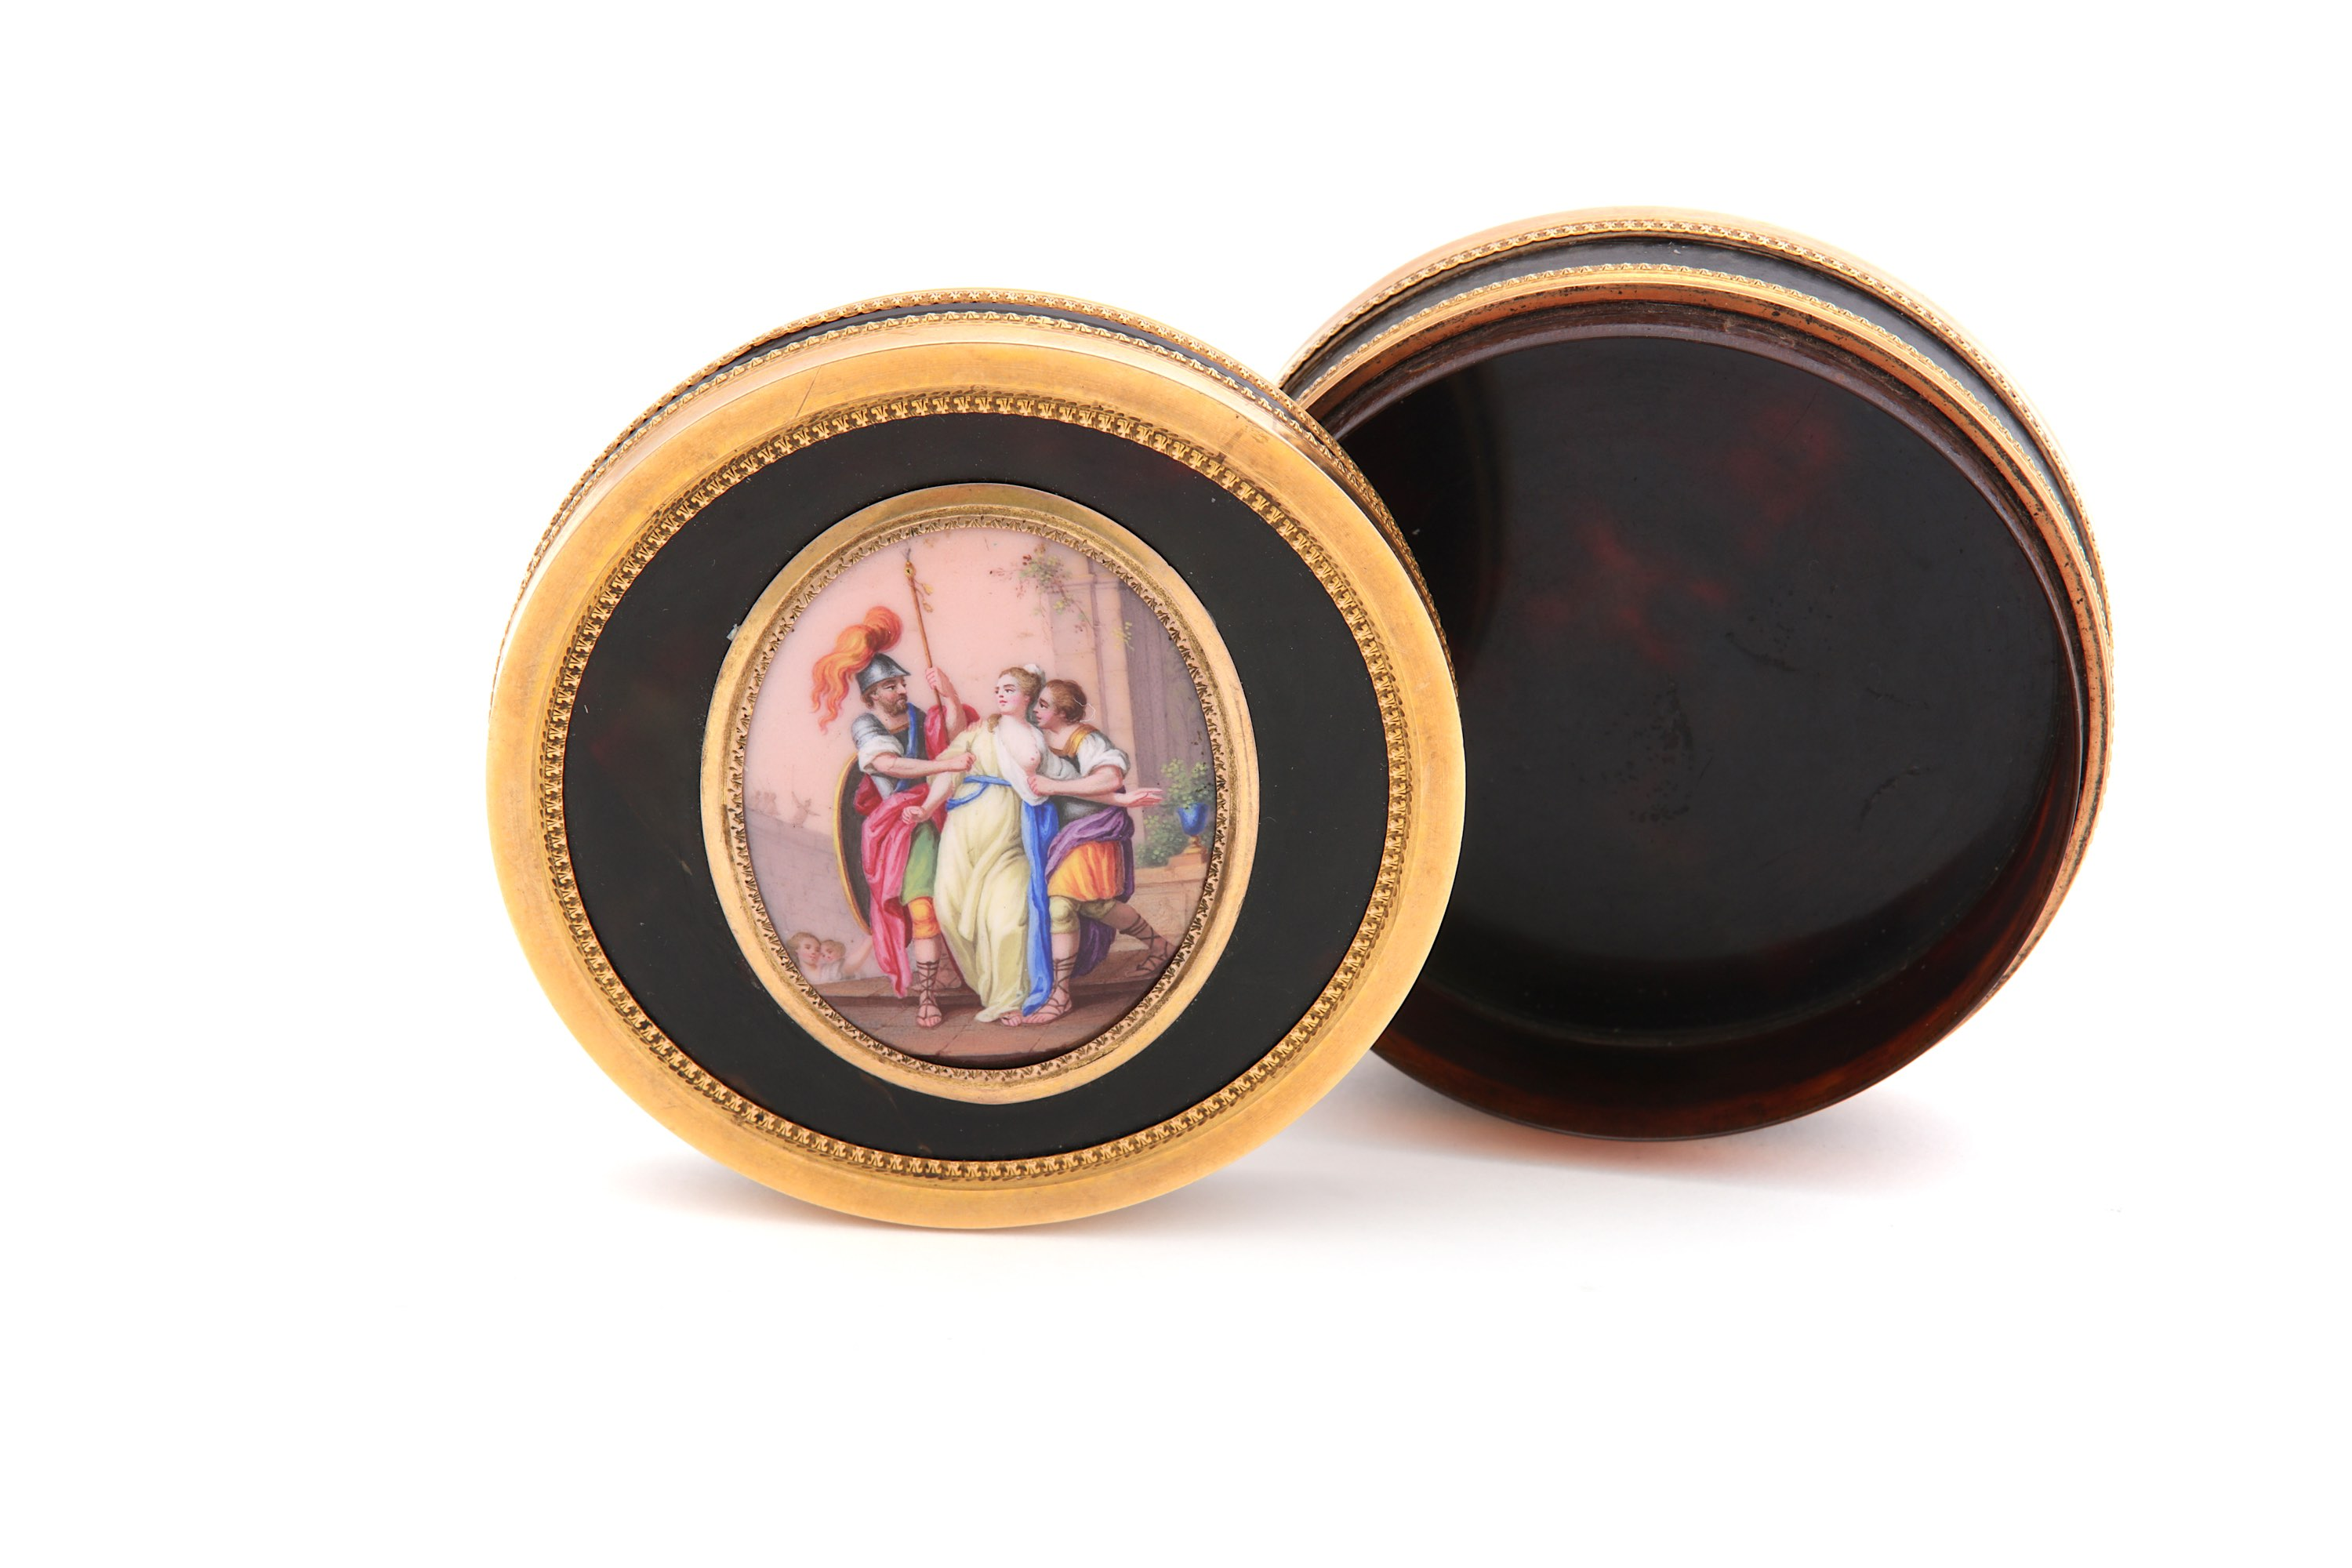 Lot 52 - A late 18th / early 19th century French unmarked gold mounted tortoiseshell snuffbox, Circa 1800